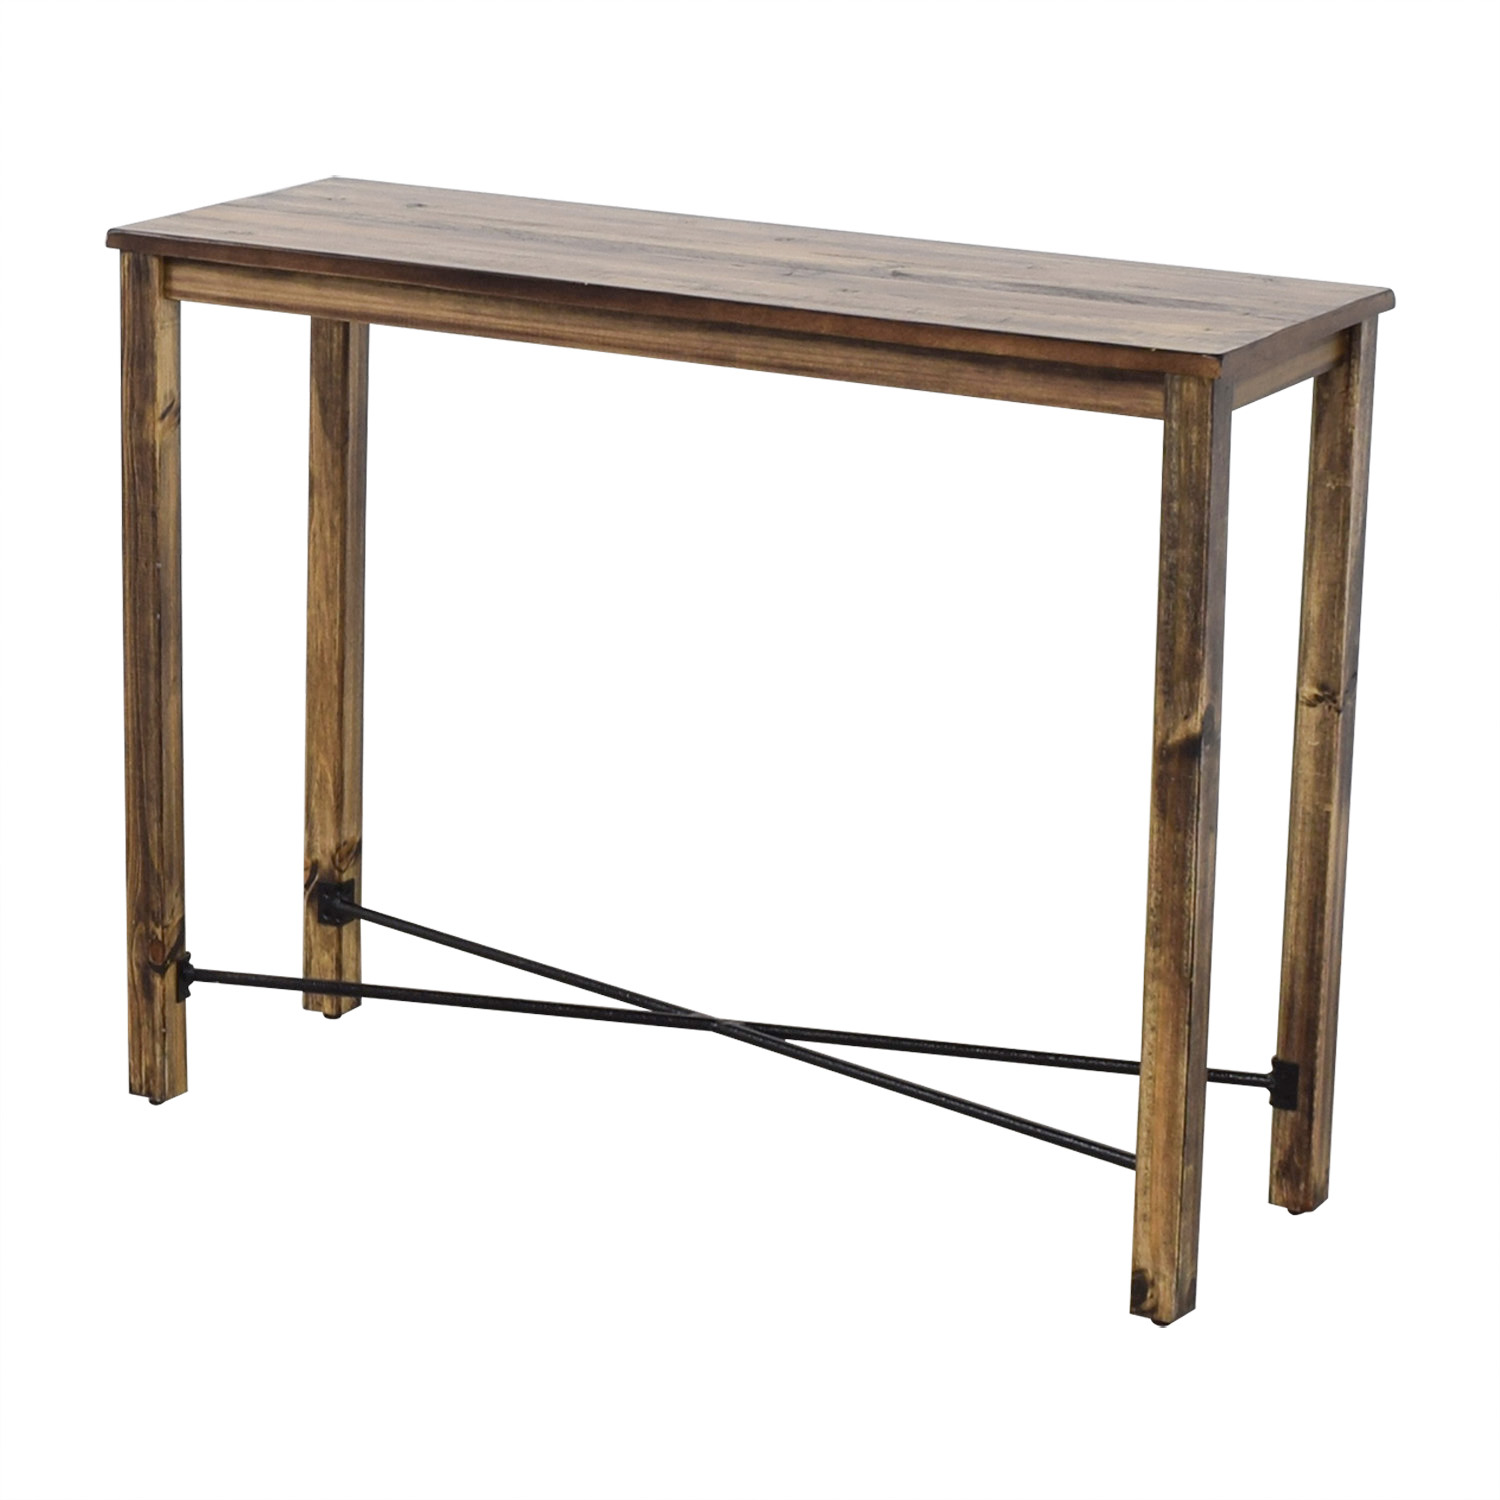 Iron Cross Bar Distressed Hardwood Console Table nyc